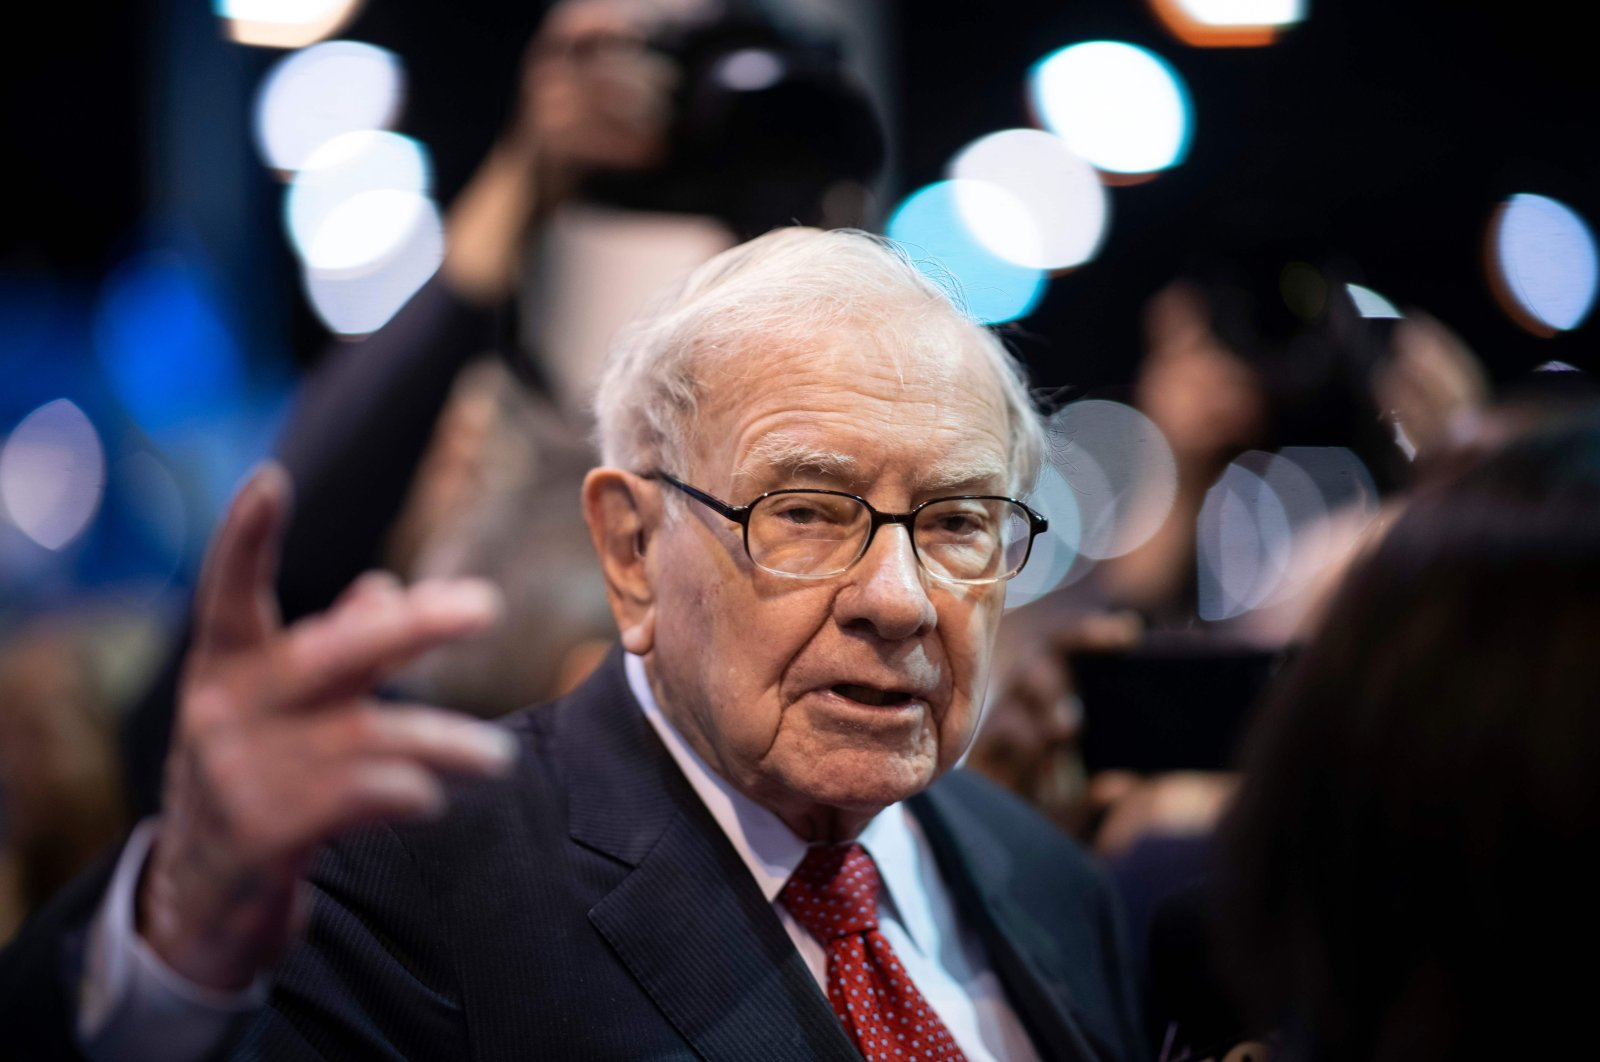 In this file photo taken on May 4, 2019, Warren Buffett, CEO of Berkshire Hathaway, speaks to the press as he arrives at the 2019 annual shareholders meeting in Omaha, Nebraska. (AFP Photo)